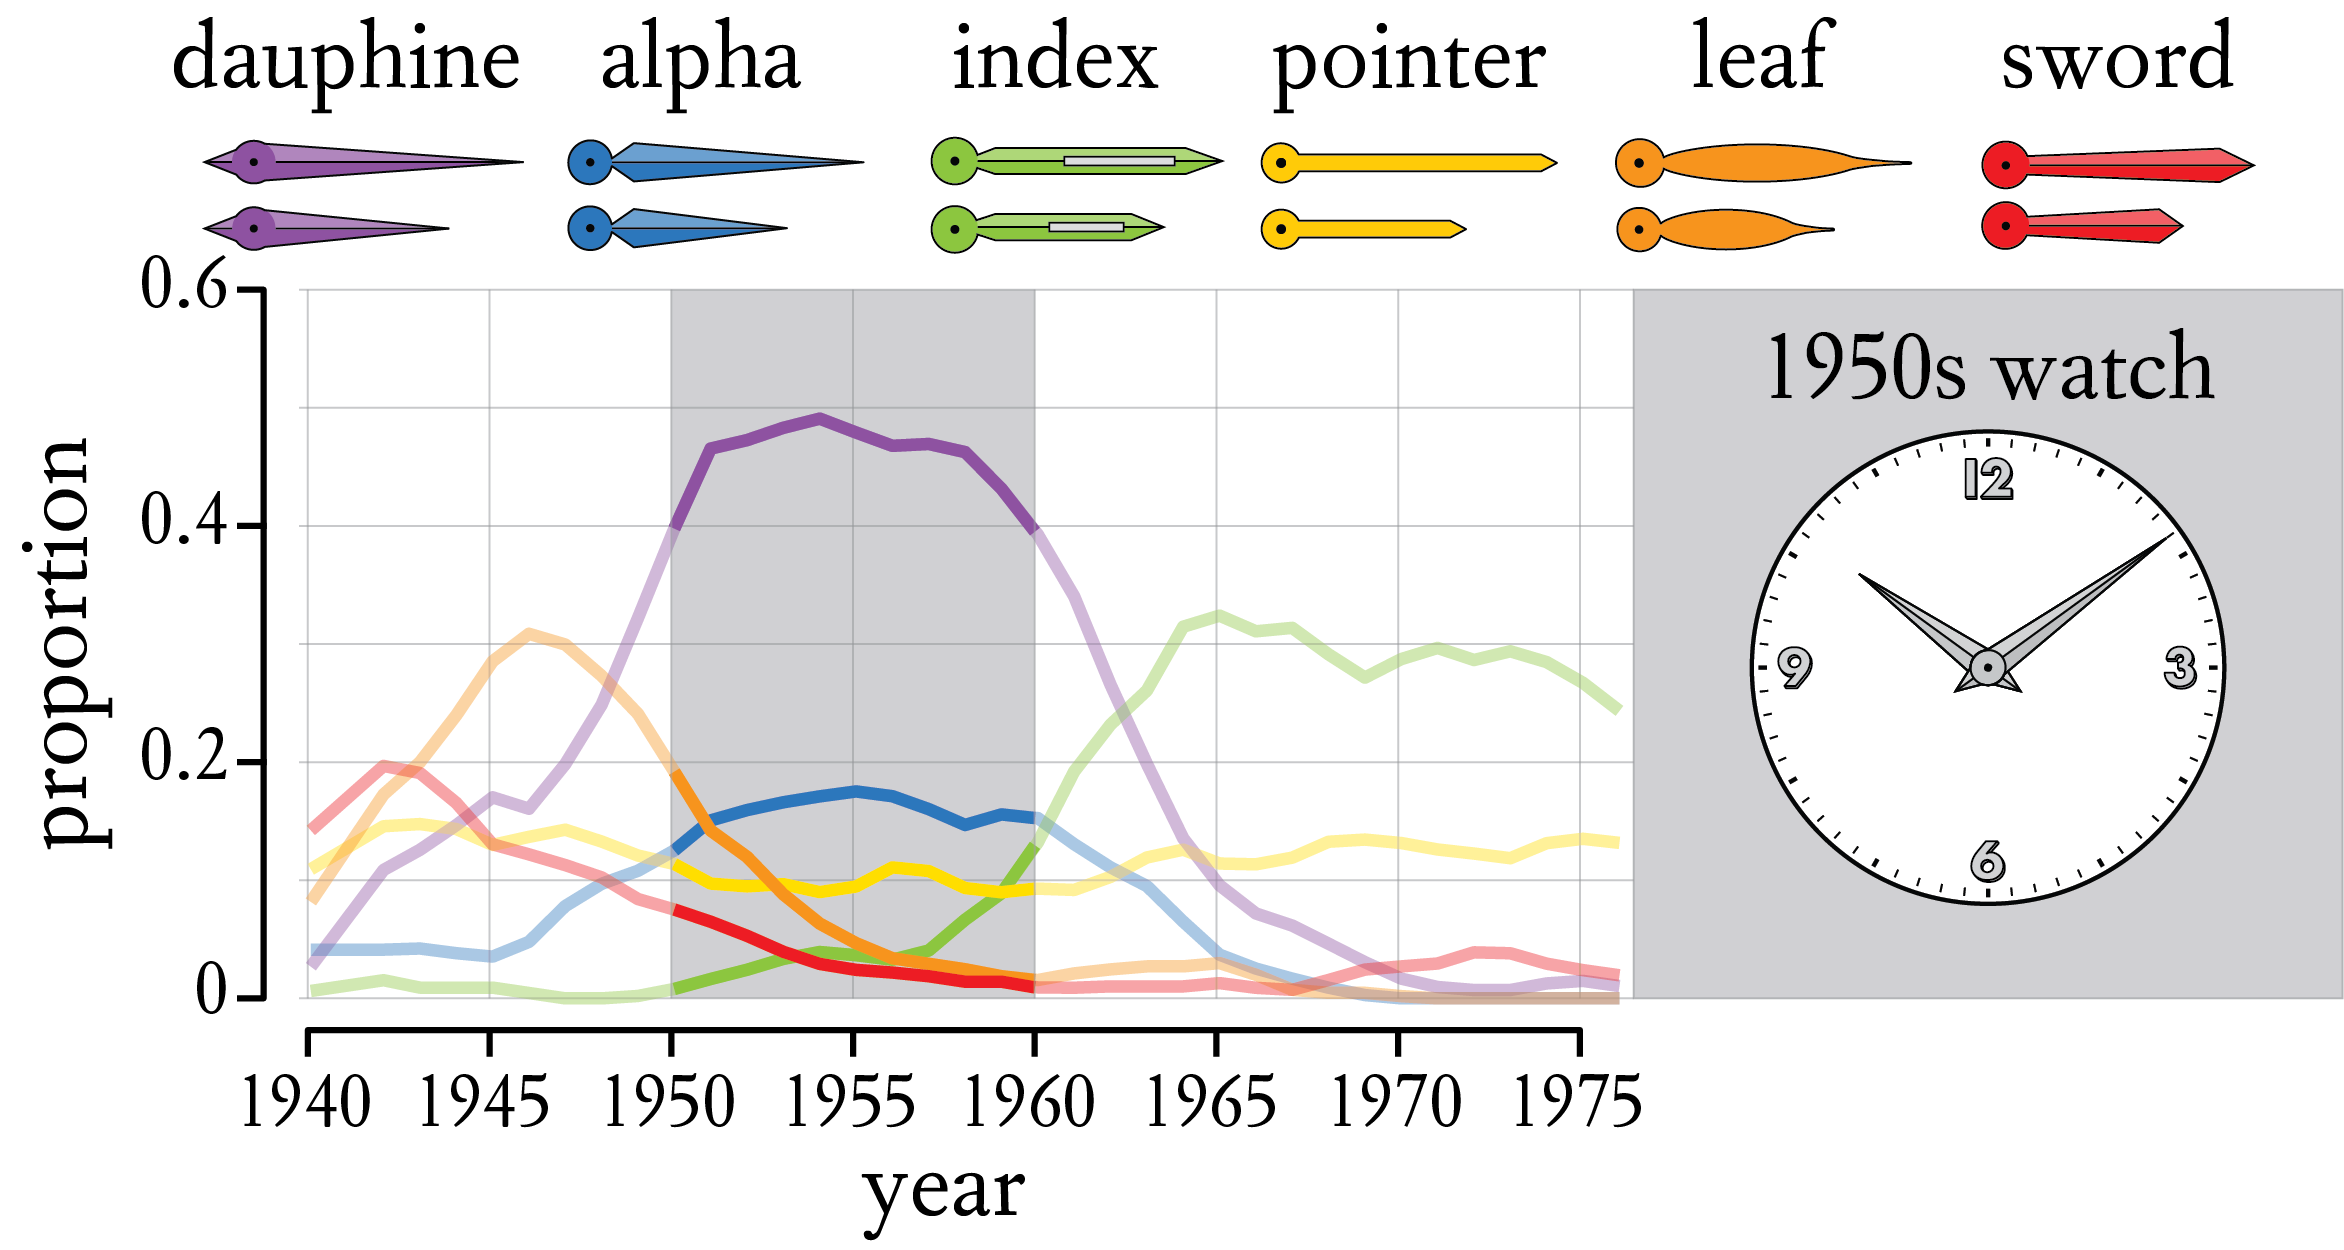 Distribution of Watch Hands from 1940 to 1975; Including Dauphine, Alpha, Index, Pointer/Baton, Leaf and Sword Hands.